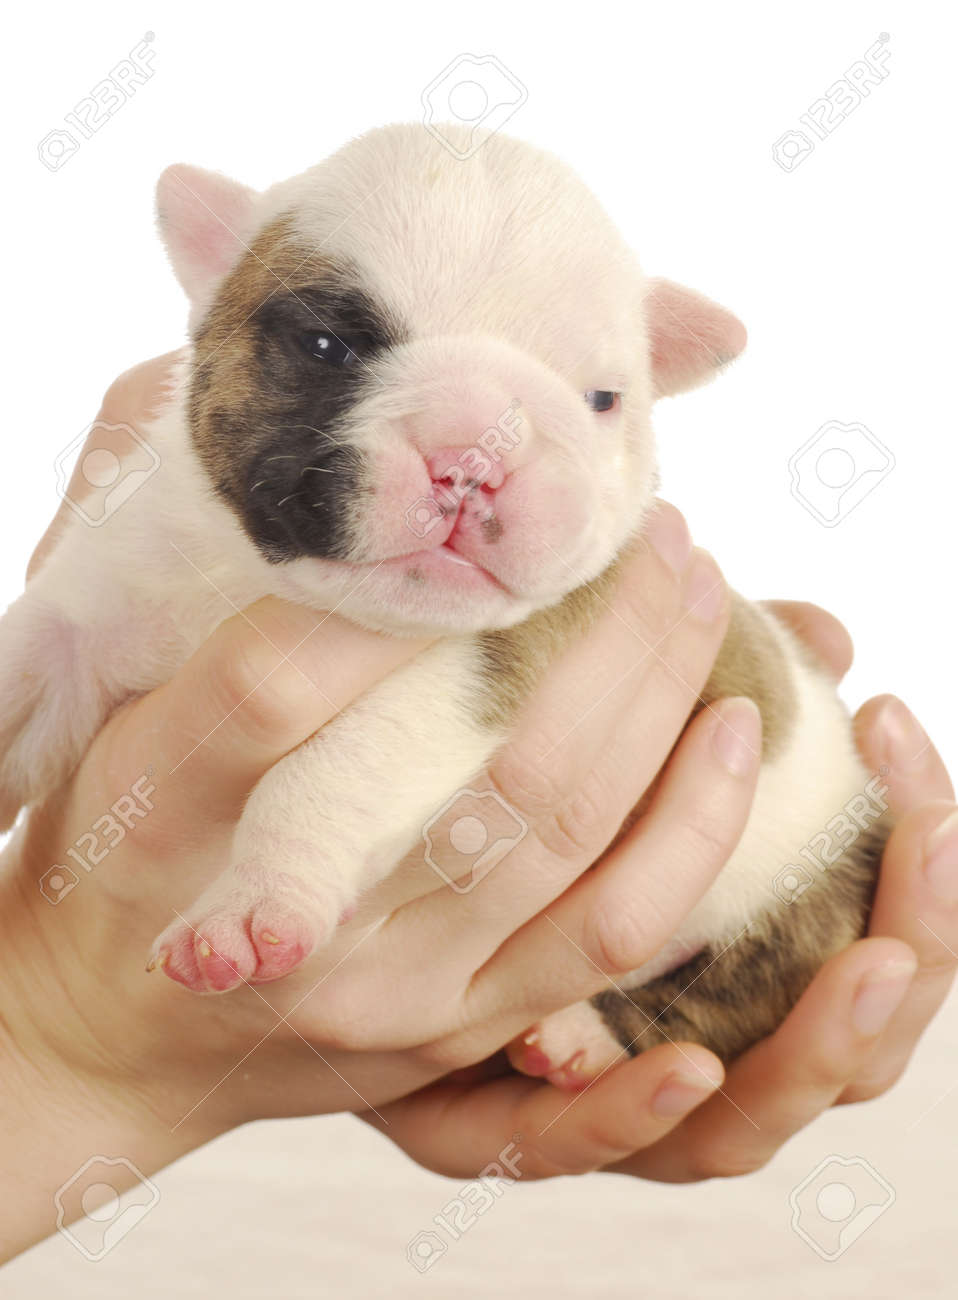 newborn puppy - english bulldog puppy - 2 weeks old Stock Photo - 9172736